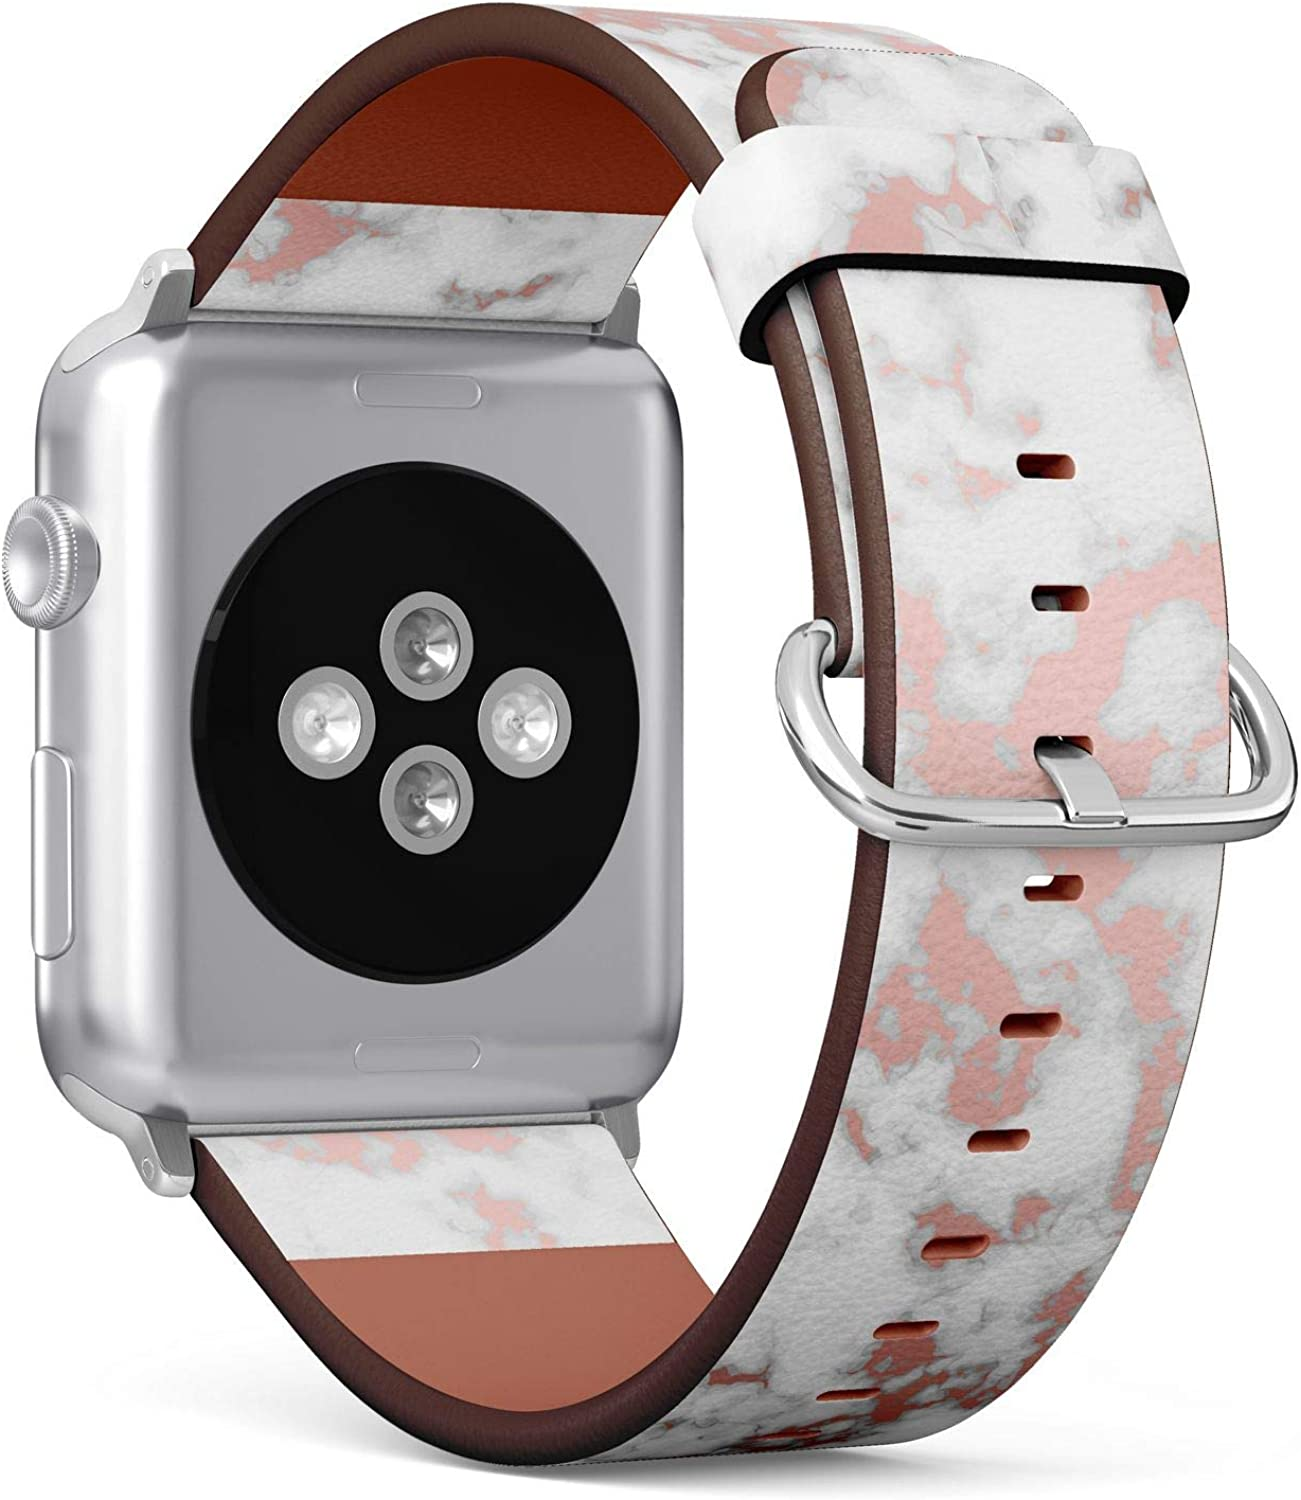 (Rosegold Marble Pattern) Patterned Leather Wristband Strap for Apple Watch Series 4/3/2/1 gen,Replacement for iWatch 38mm / 40mm Bands